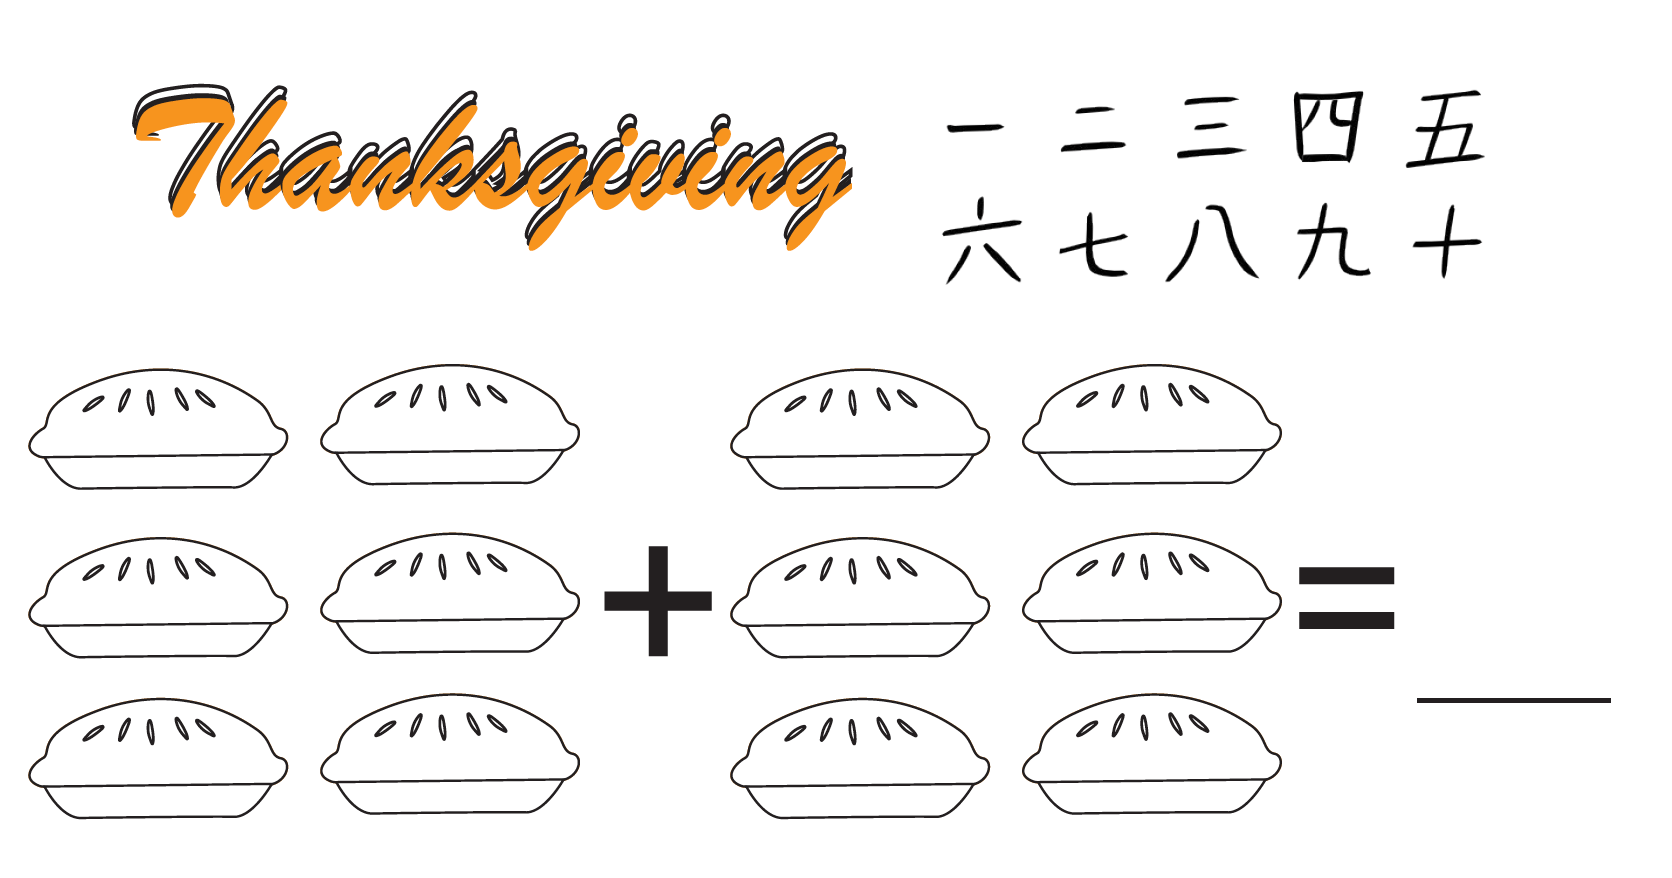 Counting Creative Chinese